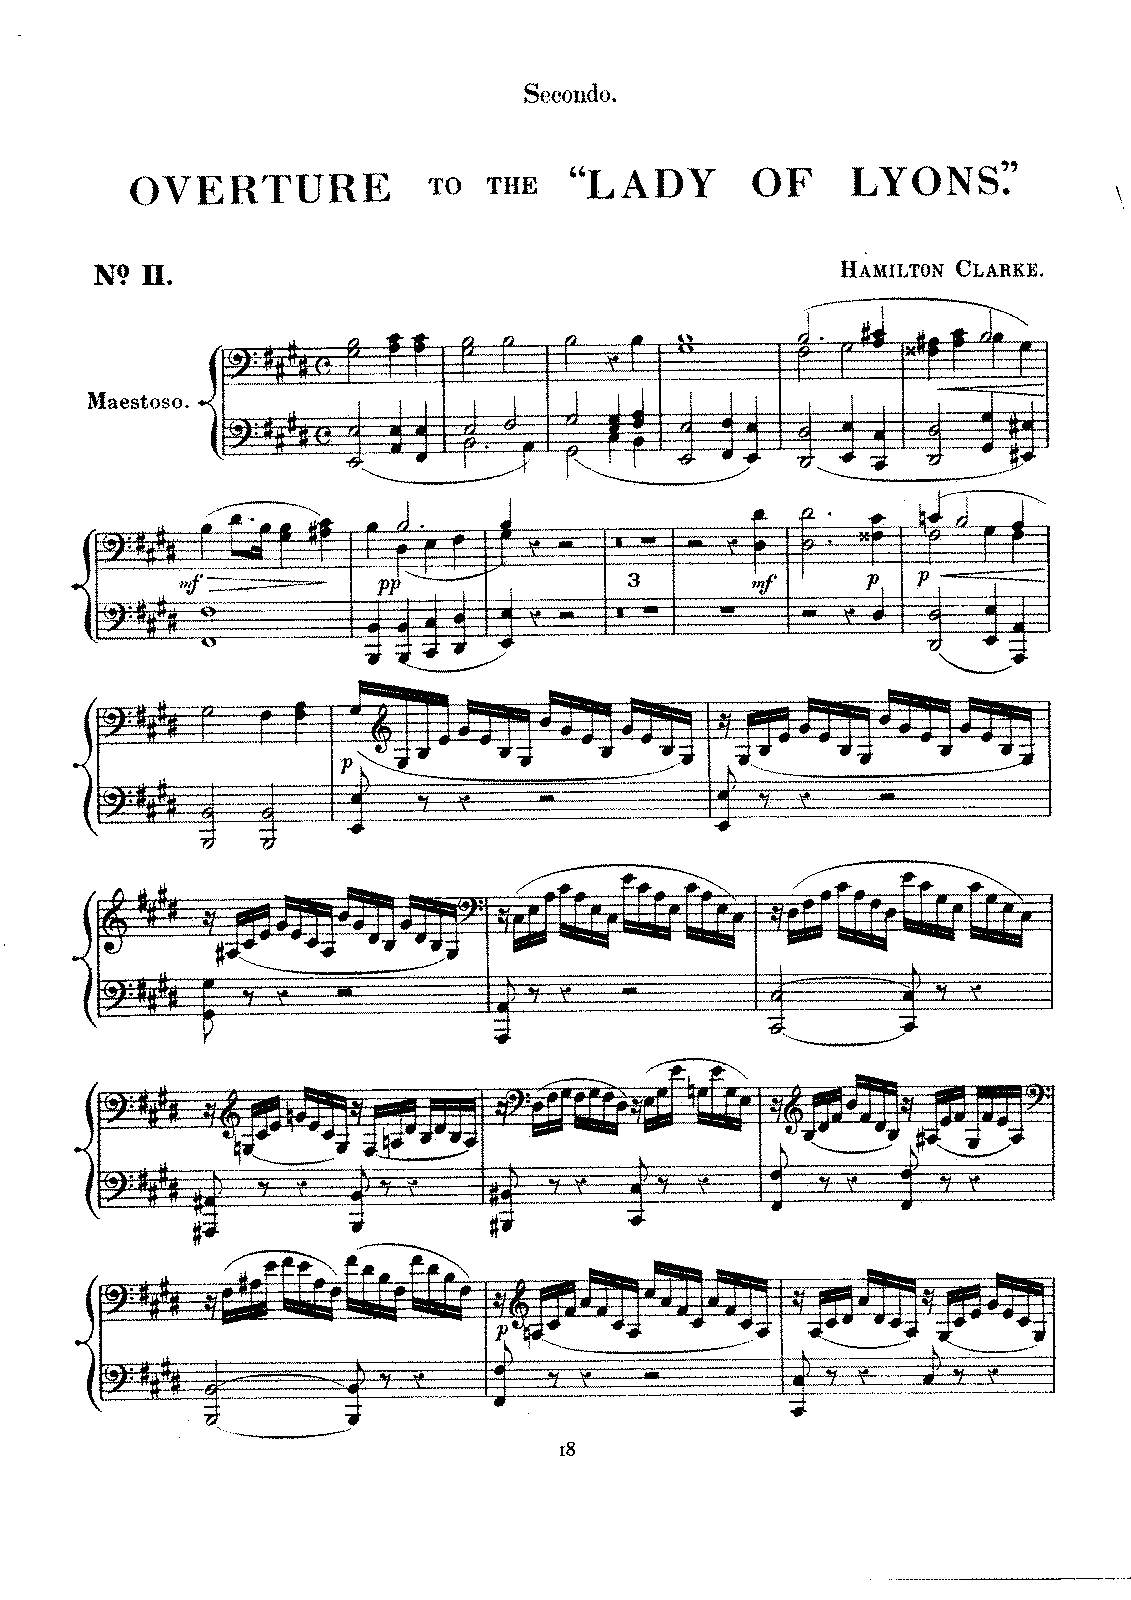 PMLP305140-Clarke, Hamilton - The Lady of Lyons, Overture.pdf